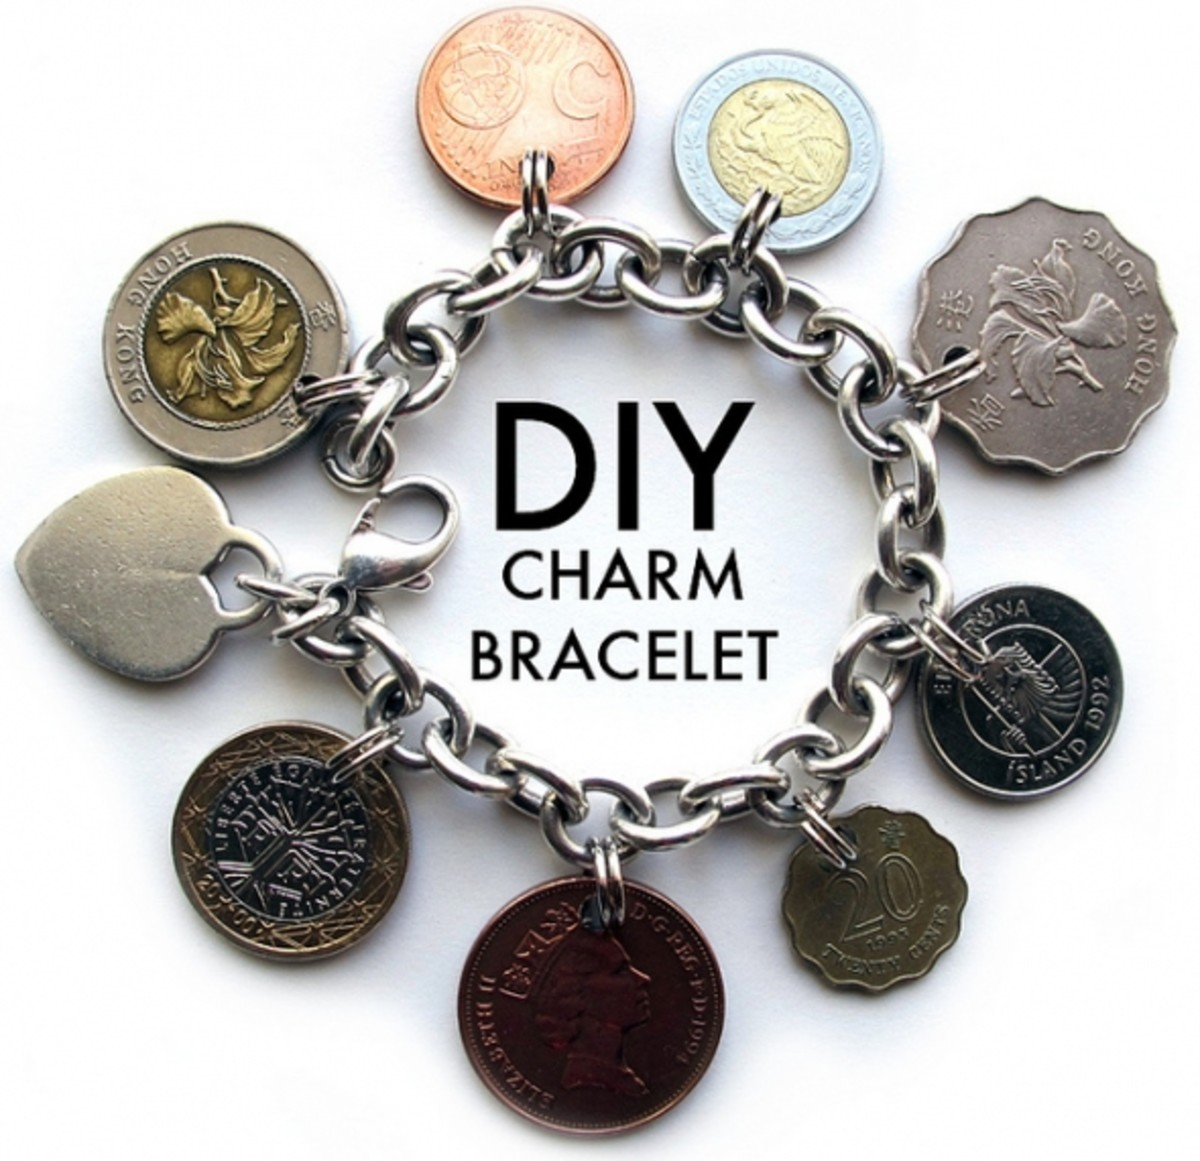 Make Your Own Charm Bracelets: How To Make Your Own Jewelry